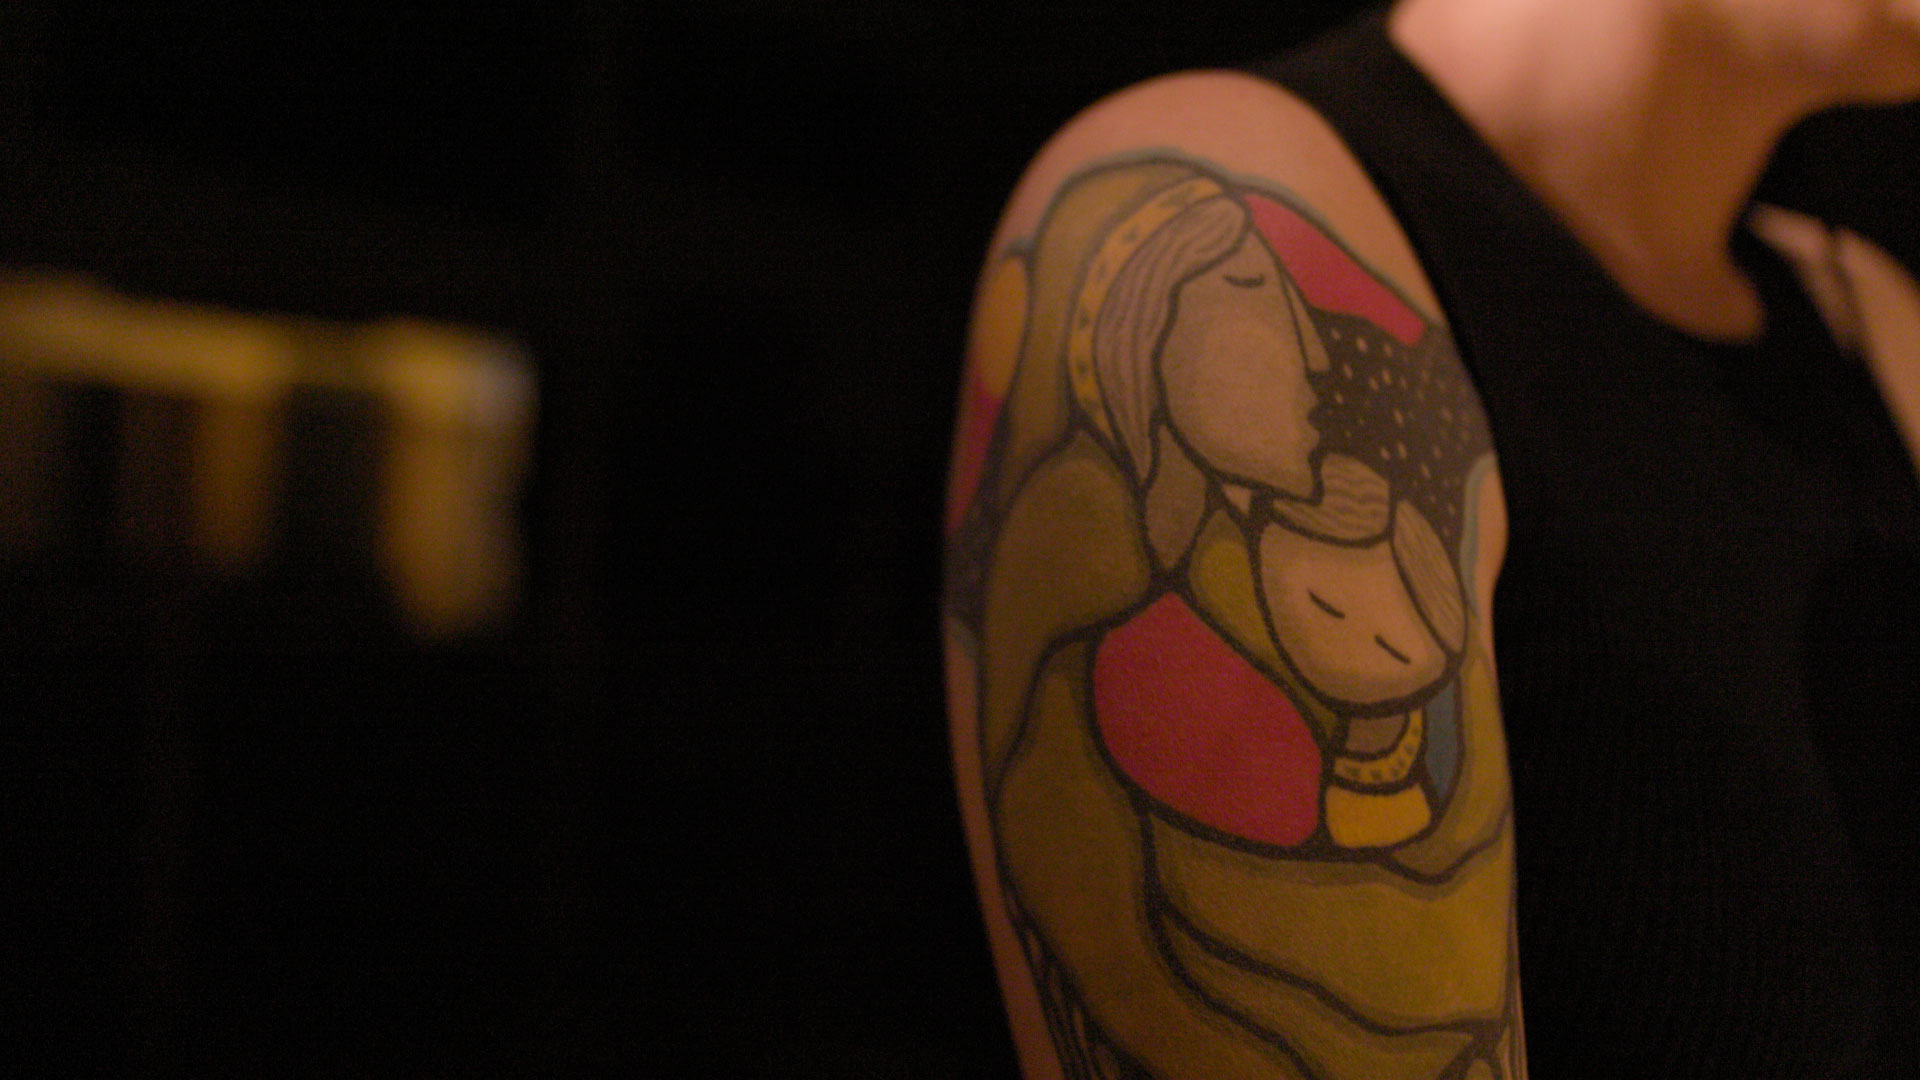 arm tattoo of mother embracing infant